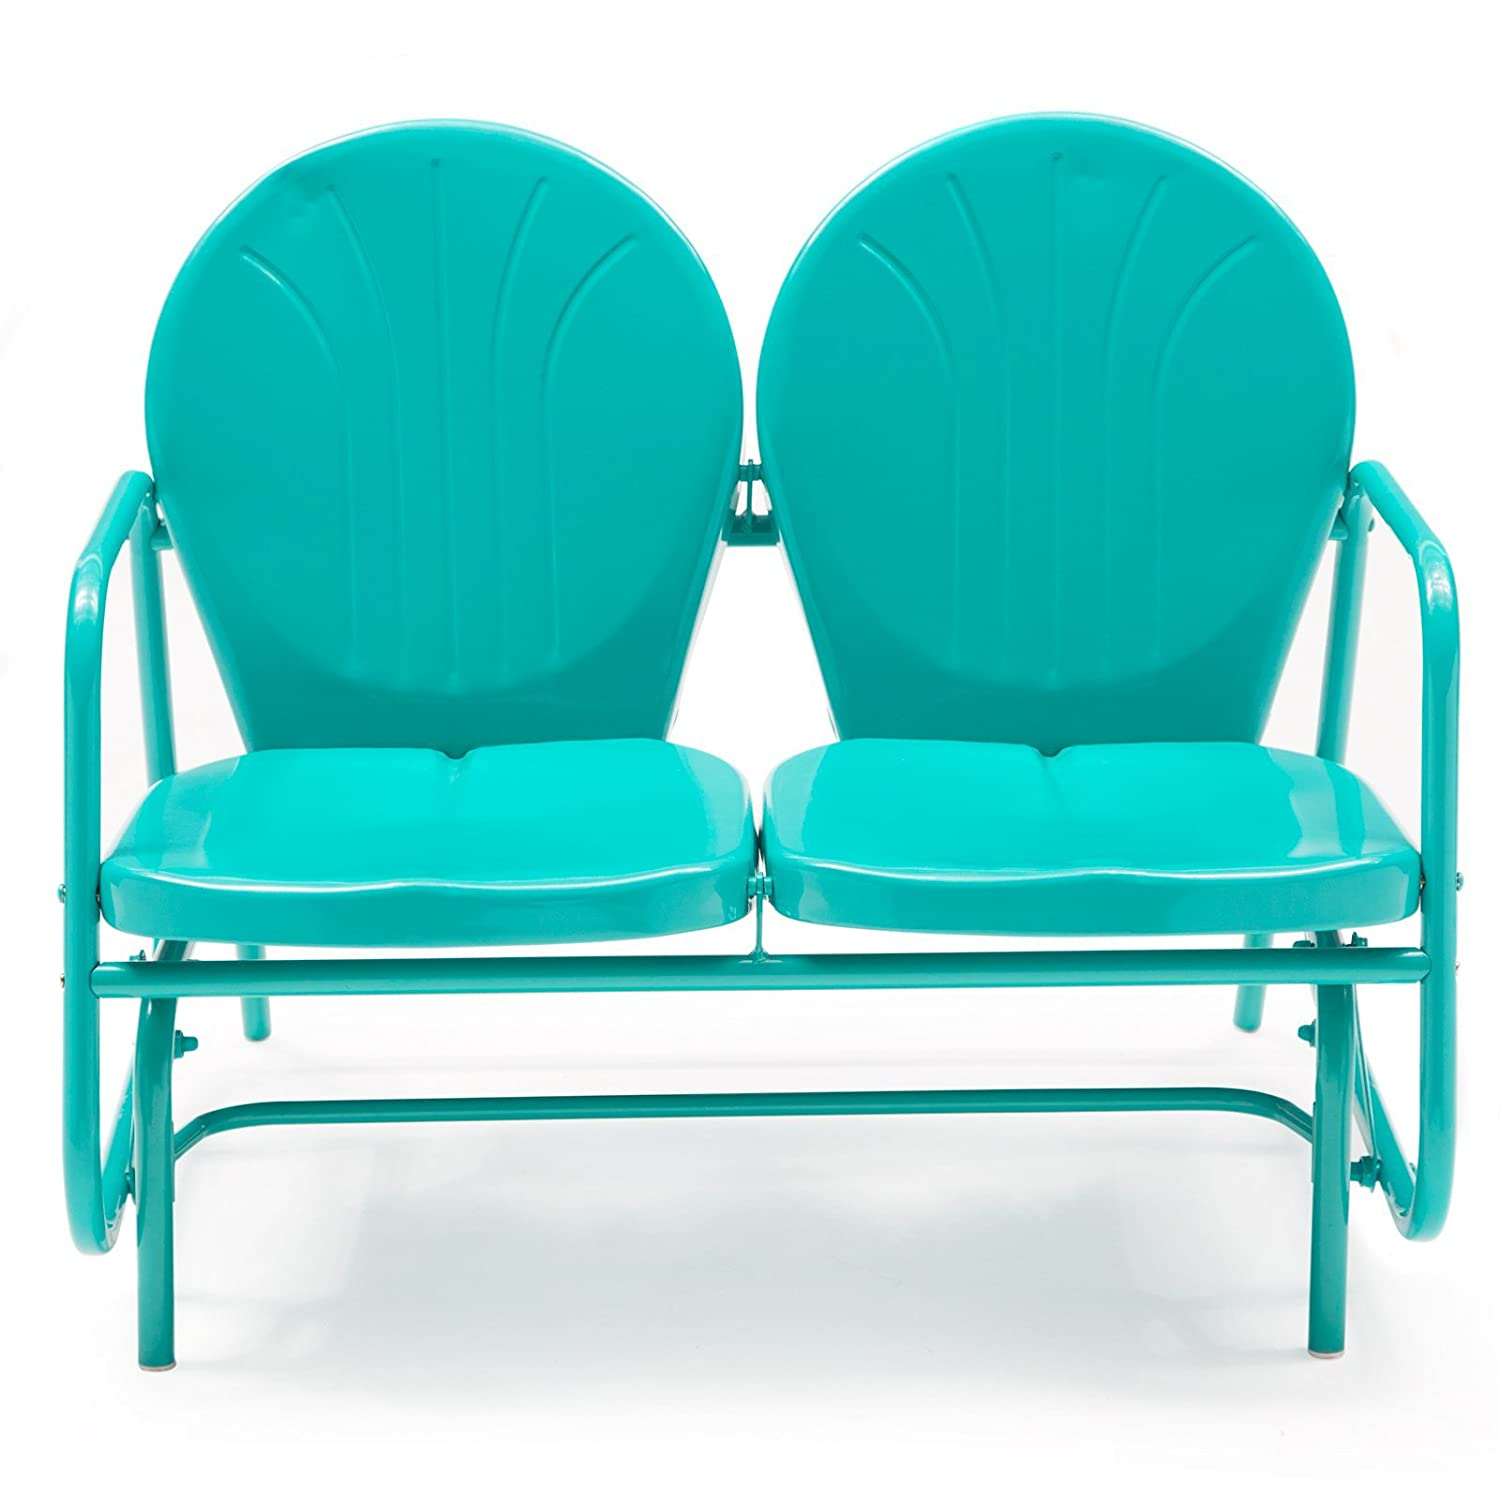 Amazon.com : Coral Coast Vintage Retro Outdoor Glider Loveseat : Garden U0026  Outdoor